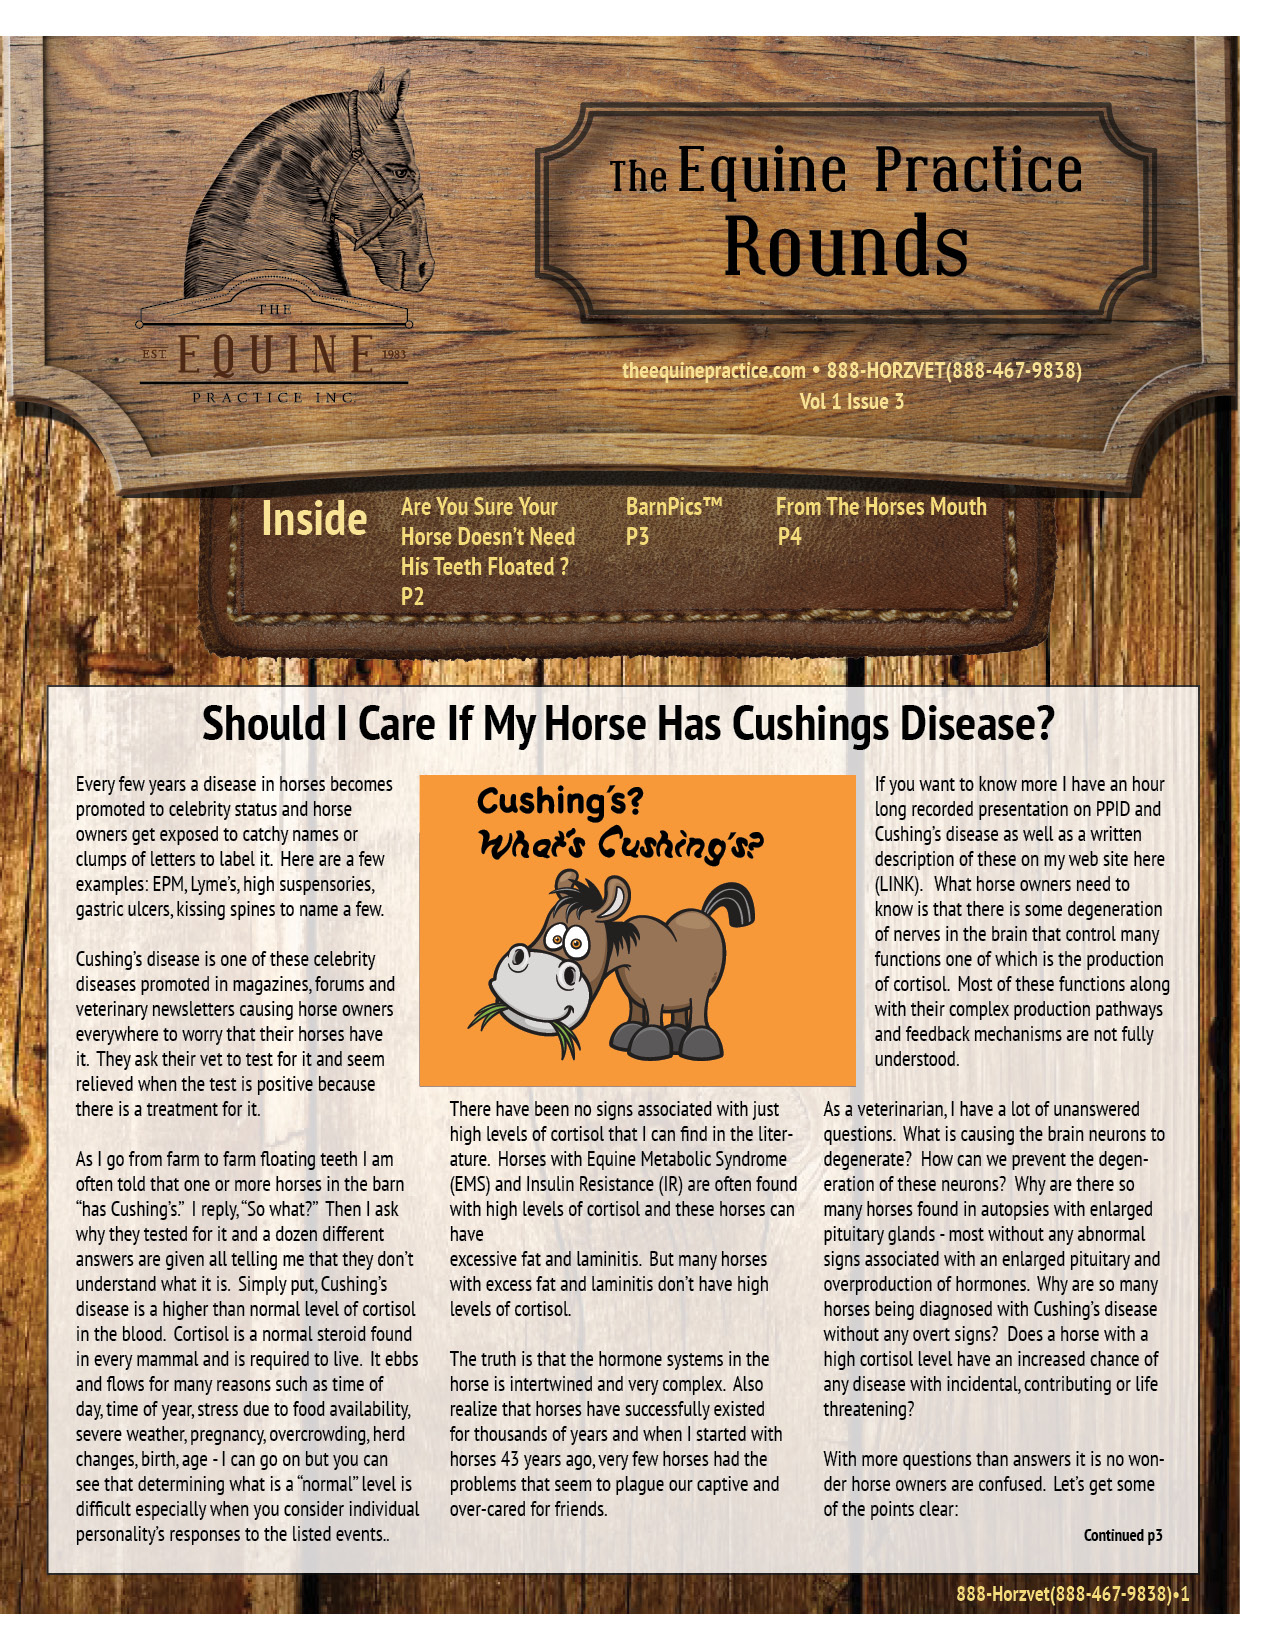 The Equine Practice Rounds™ Vol 1 Issue 3 page 1 of 4